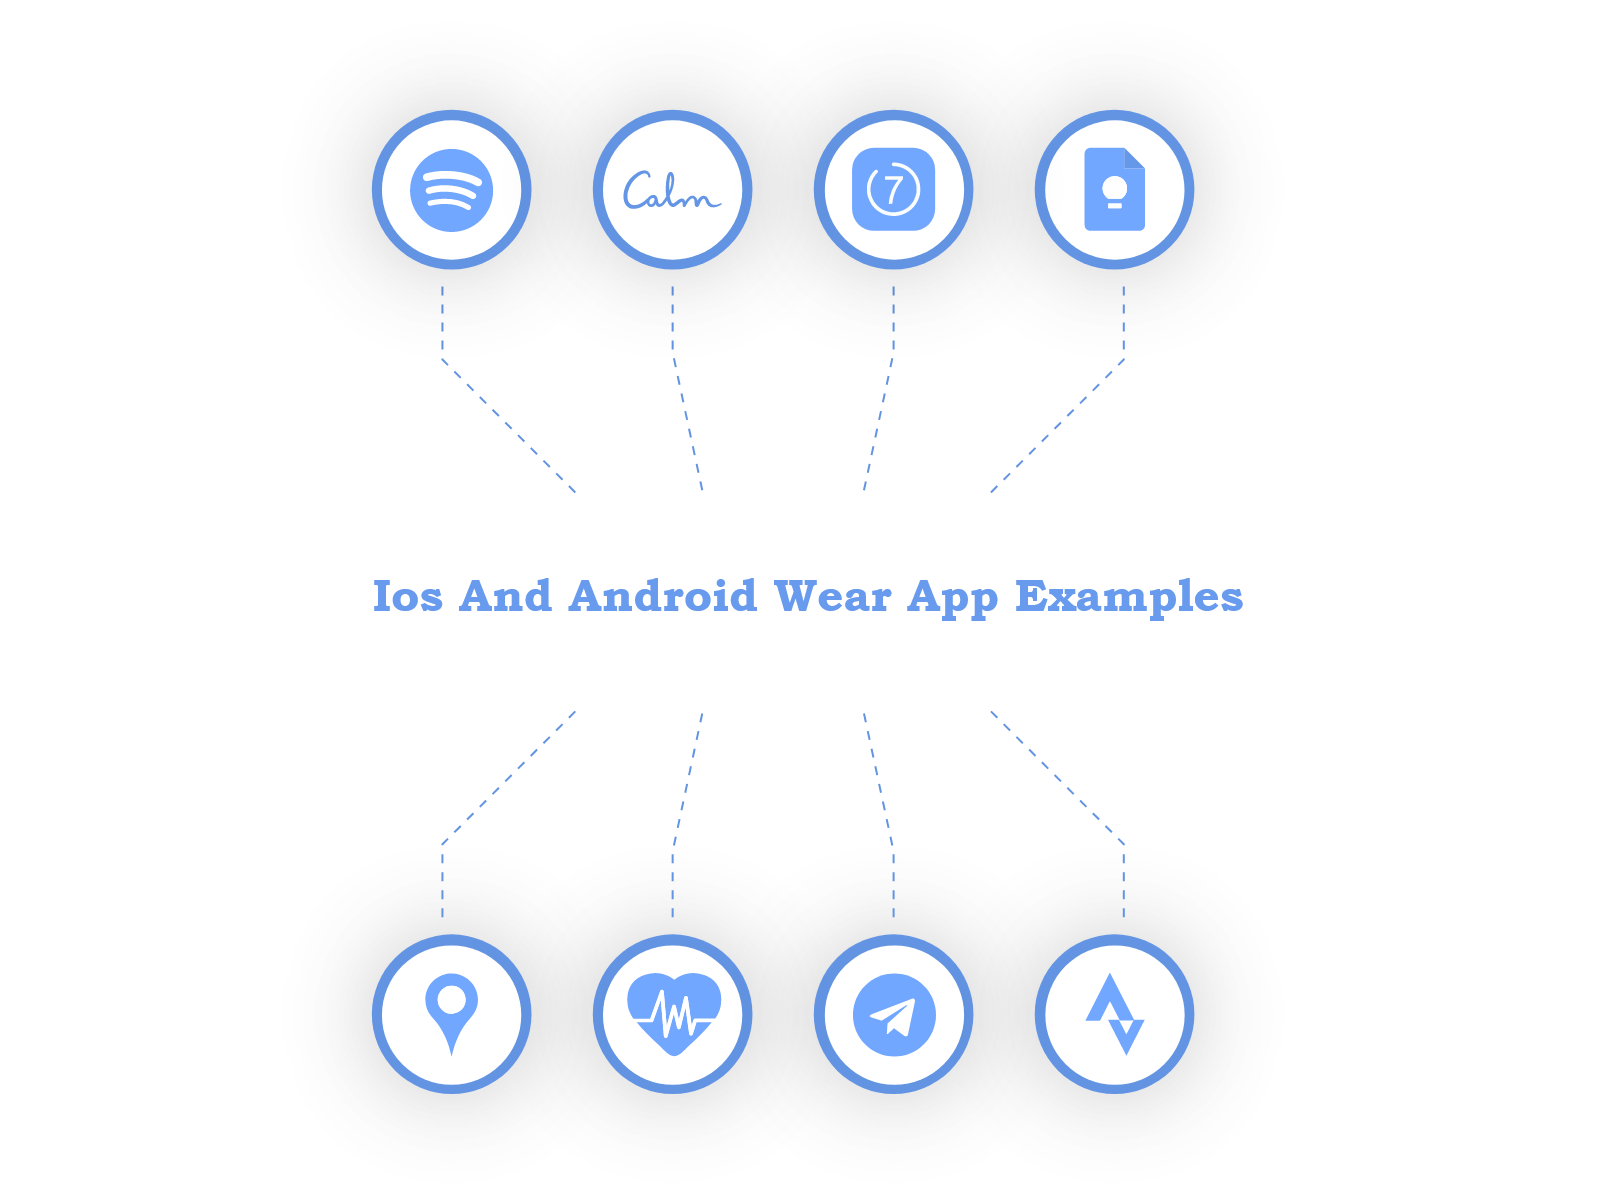 iOS and Android Wear App Examples